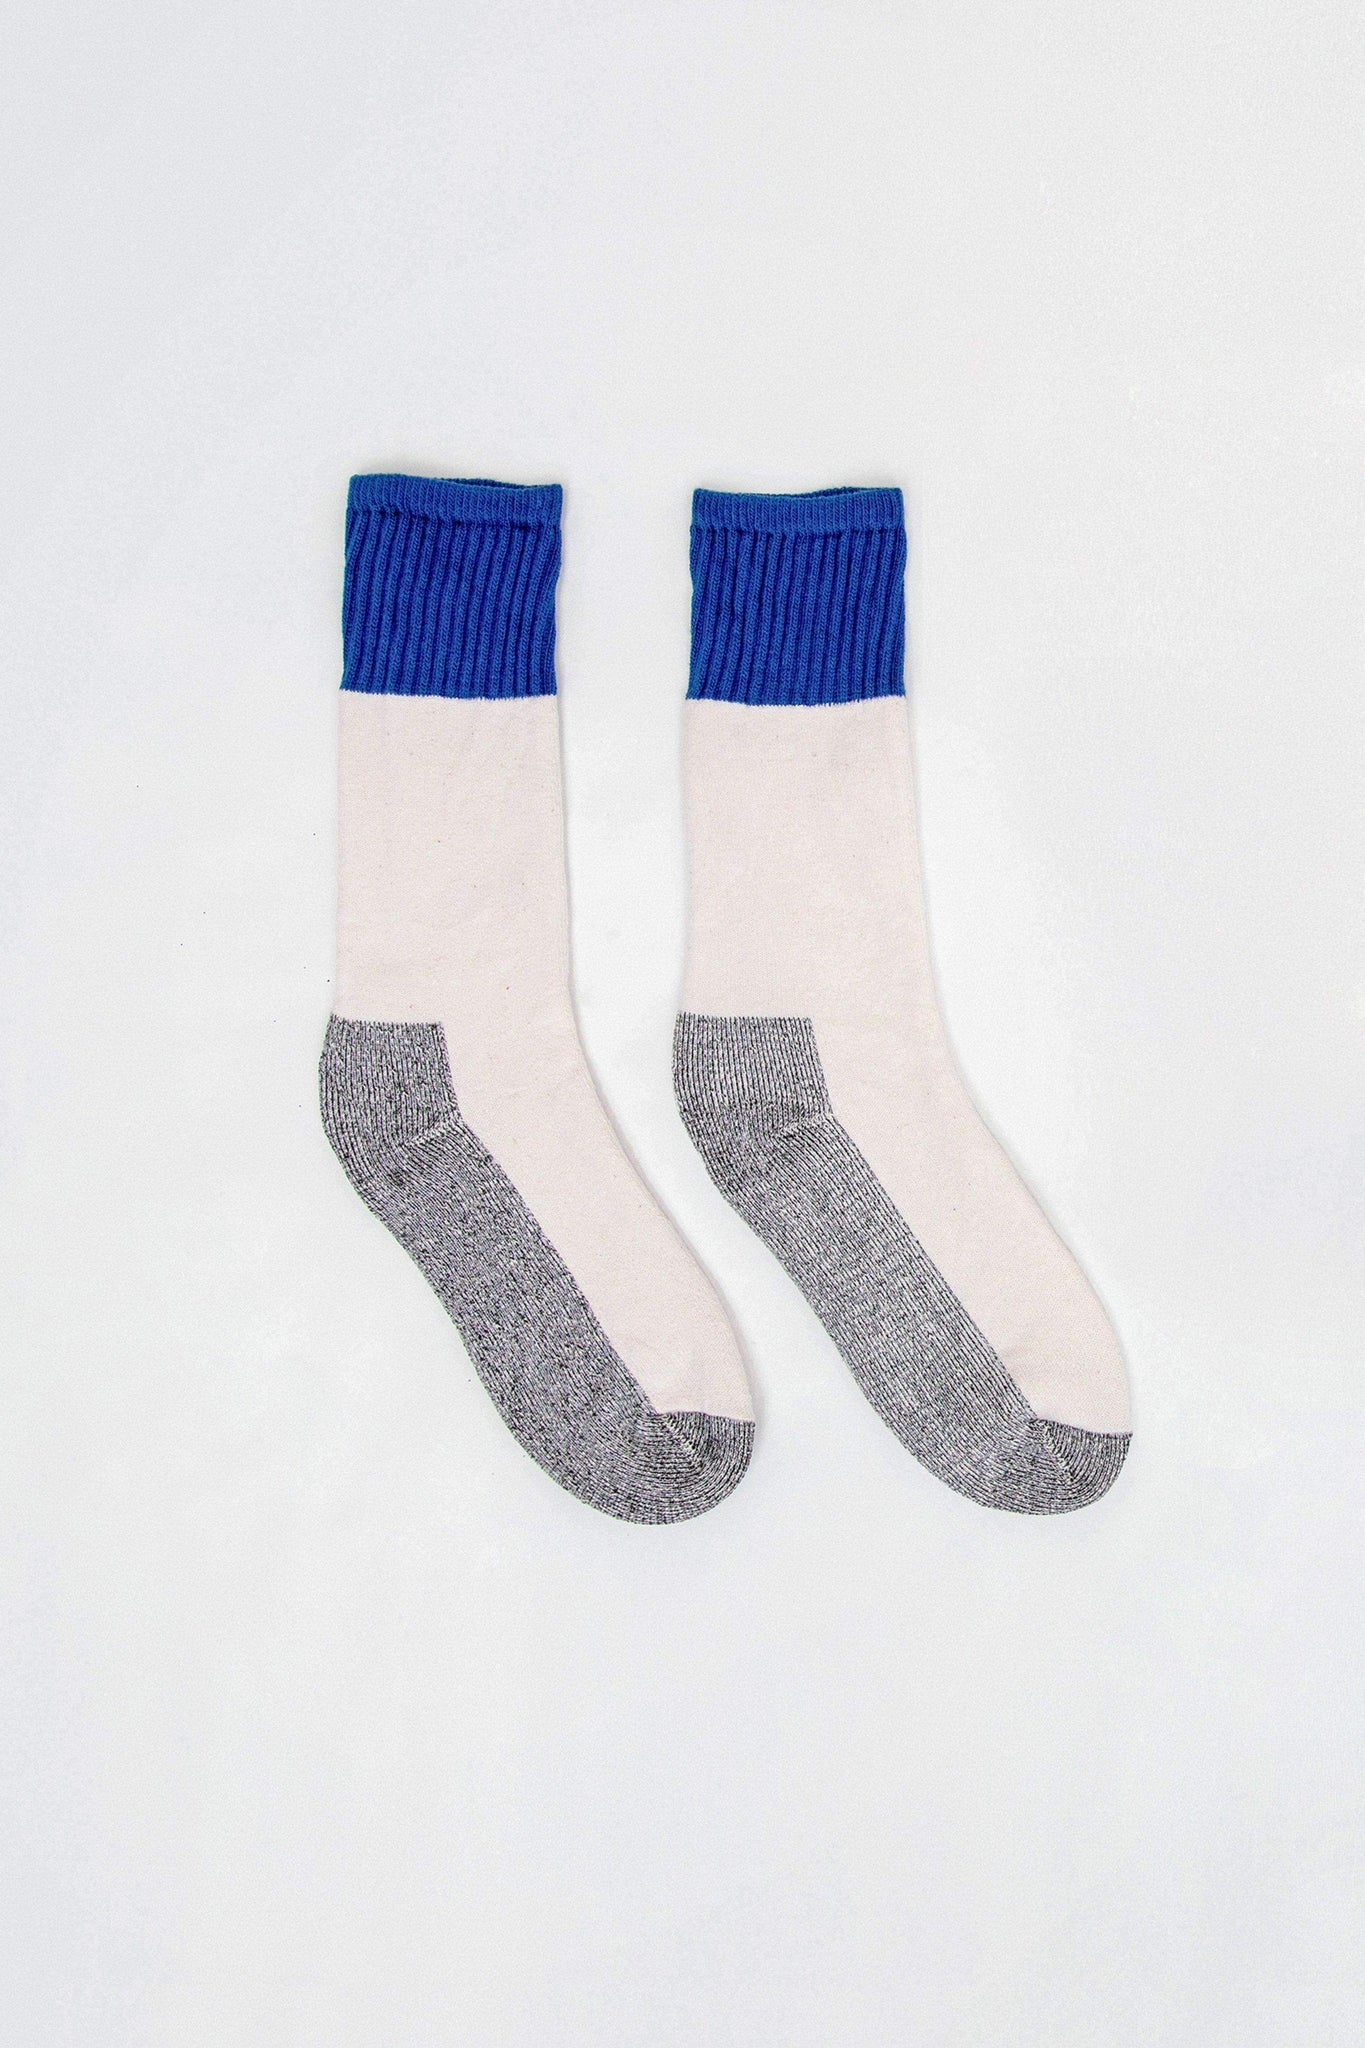 CBLKSOCK - Color Block Boot Sock Socks Los Angeles Apparel ROYAL OS